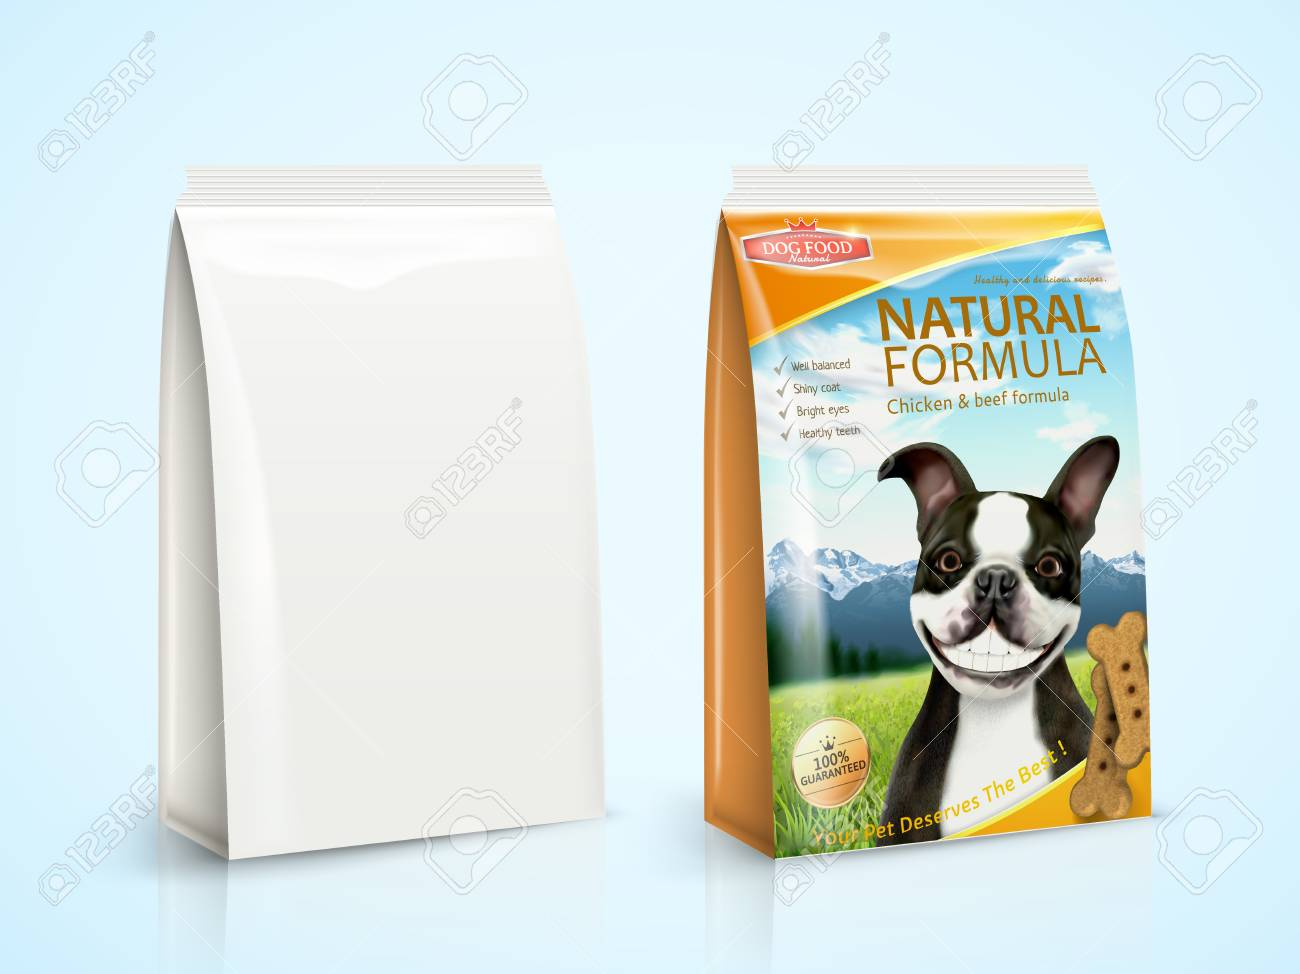 Dog Food Package Design With Boston Terrier In 3d Illustration